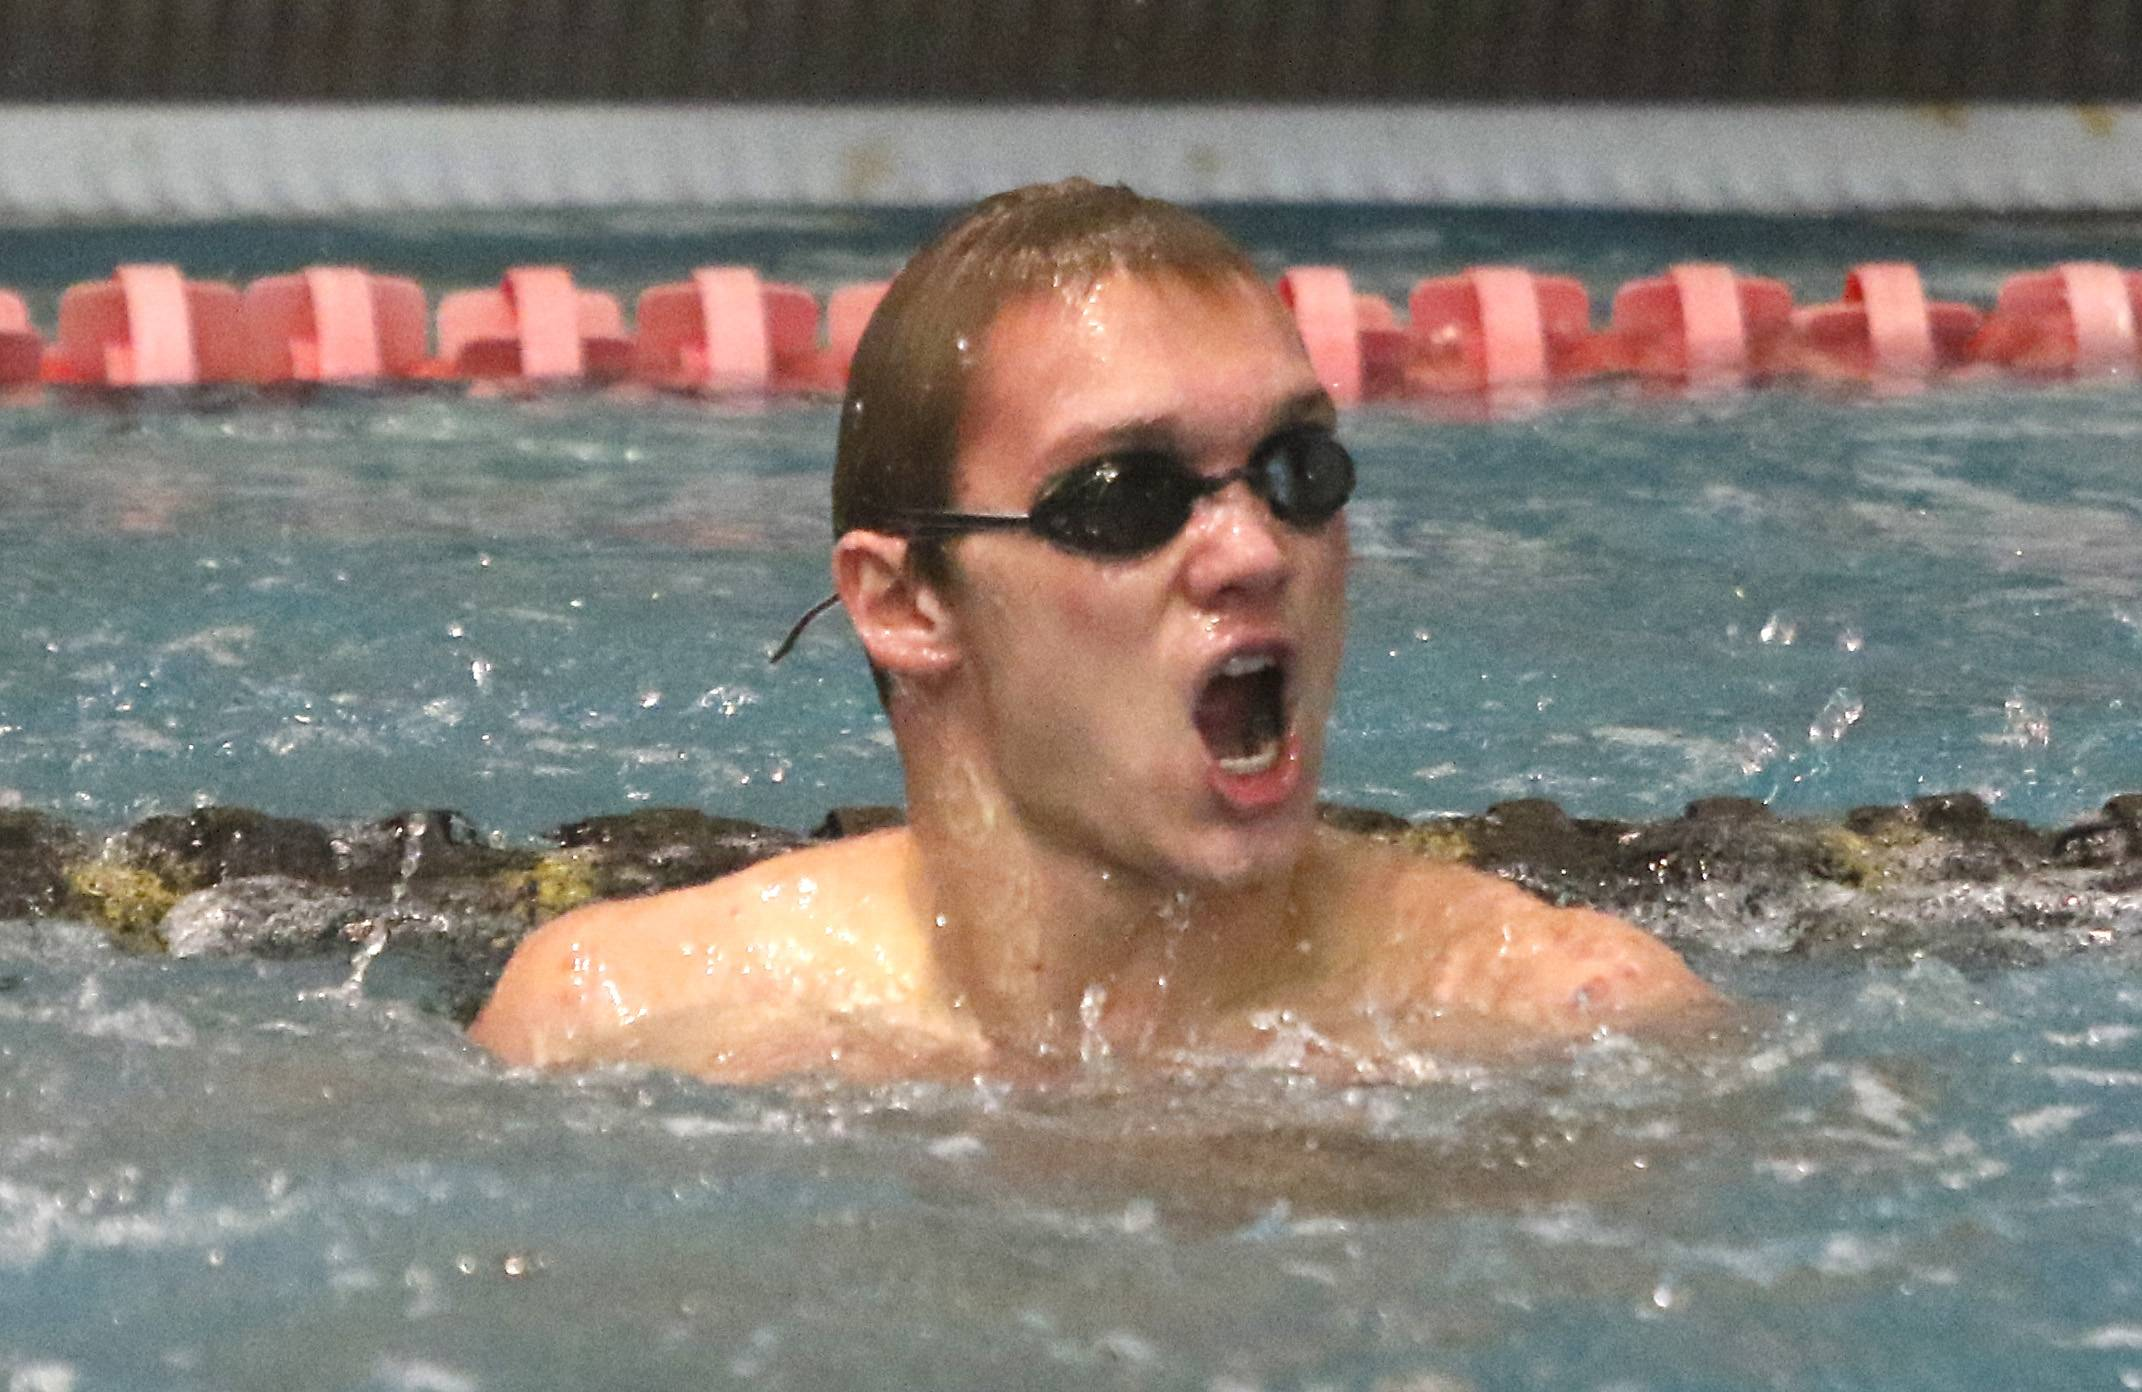 Naperville Central's Philip Sajaev celebrates a first place finish in the 200 Yard Medley Relay during the Metea Valley boys swimming sectional.